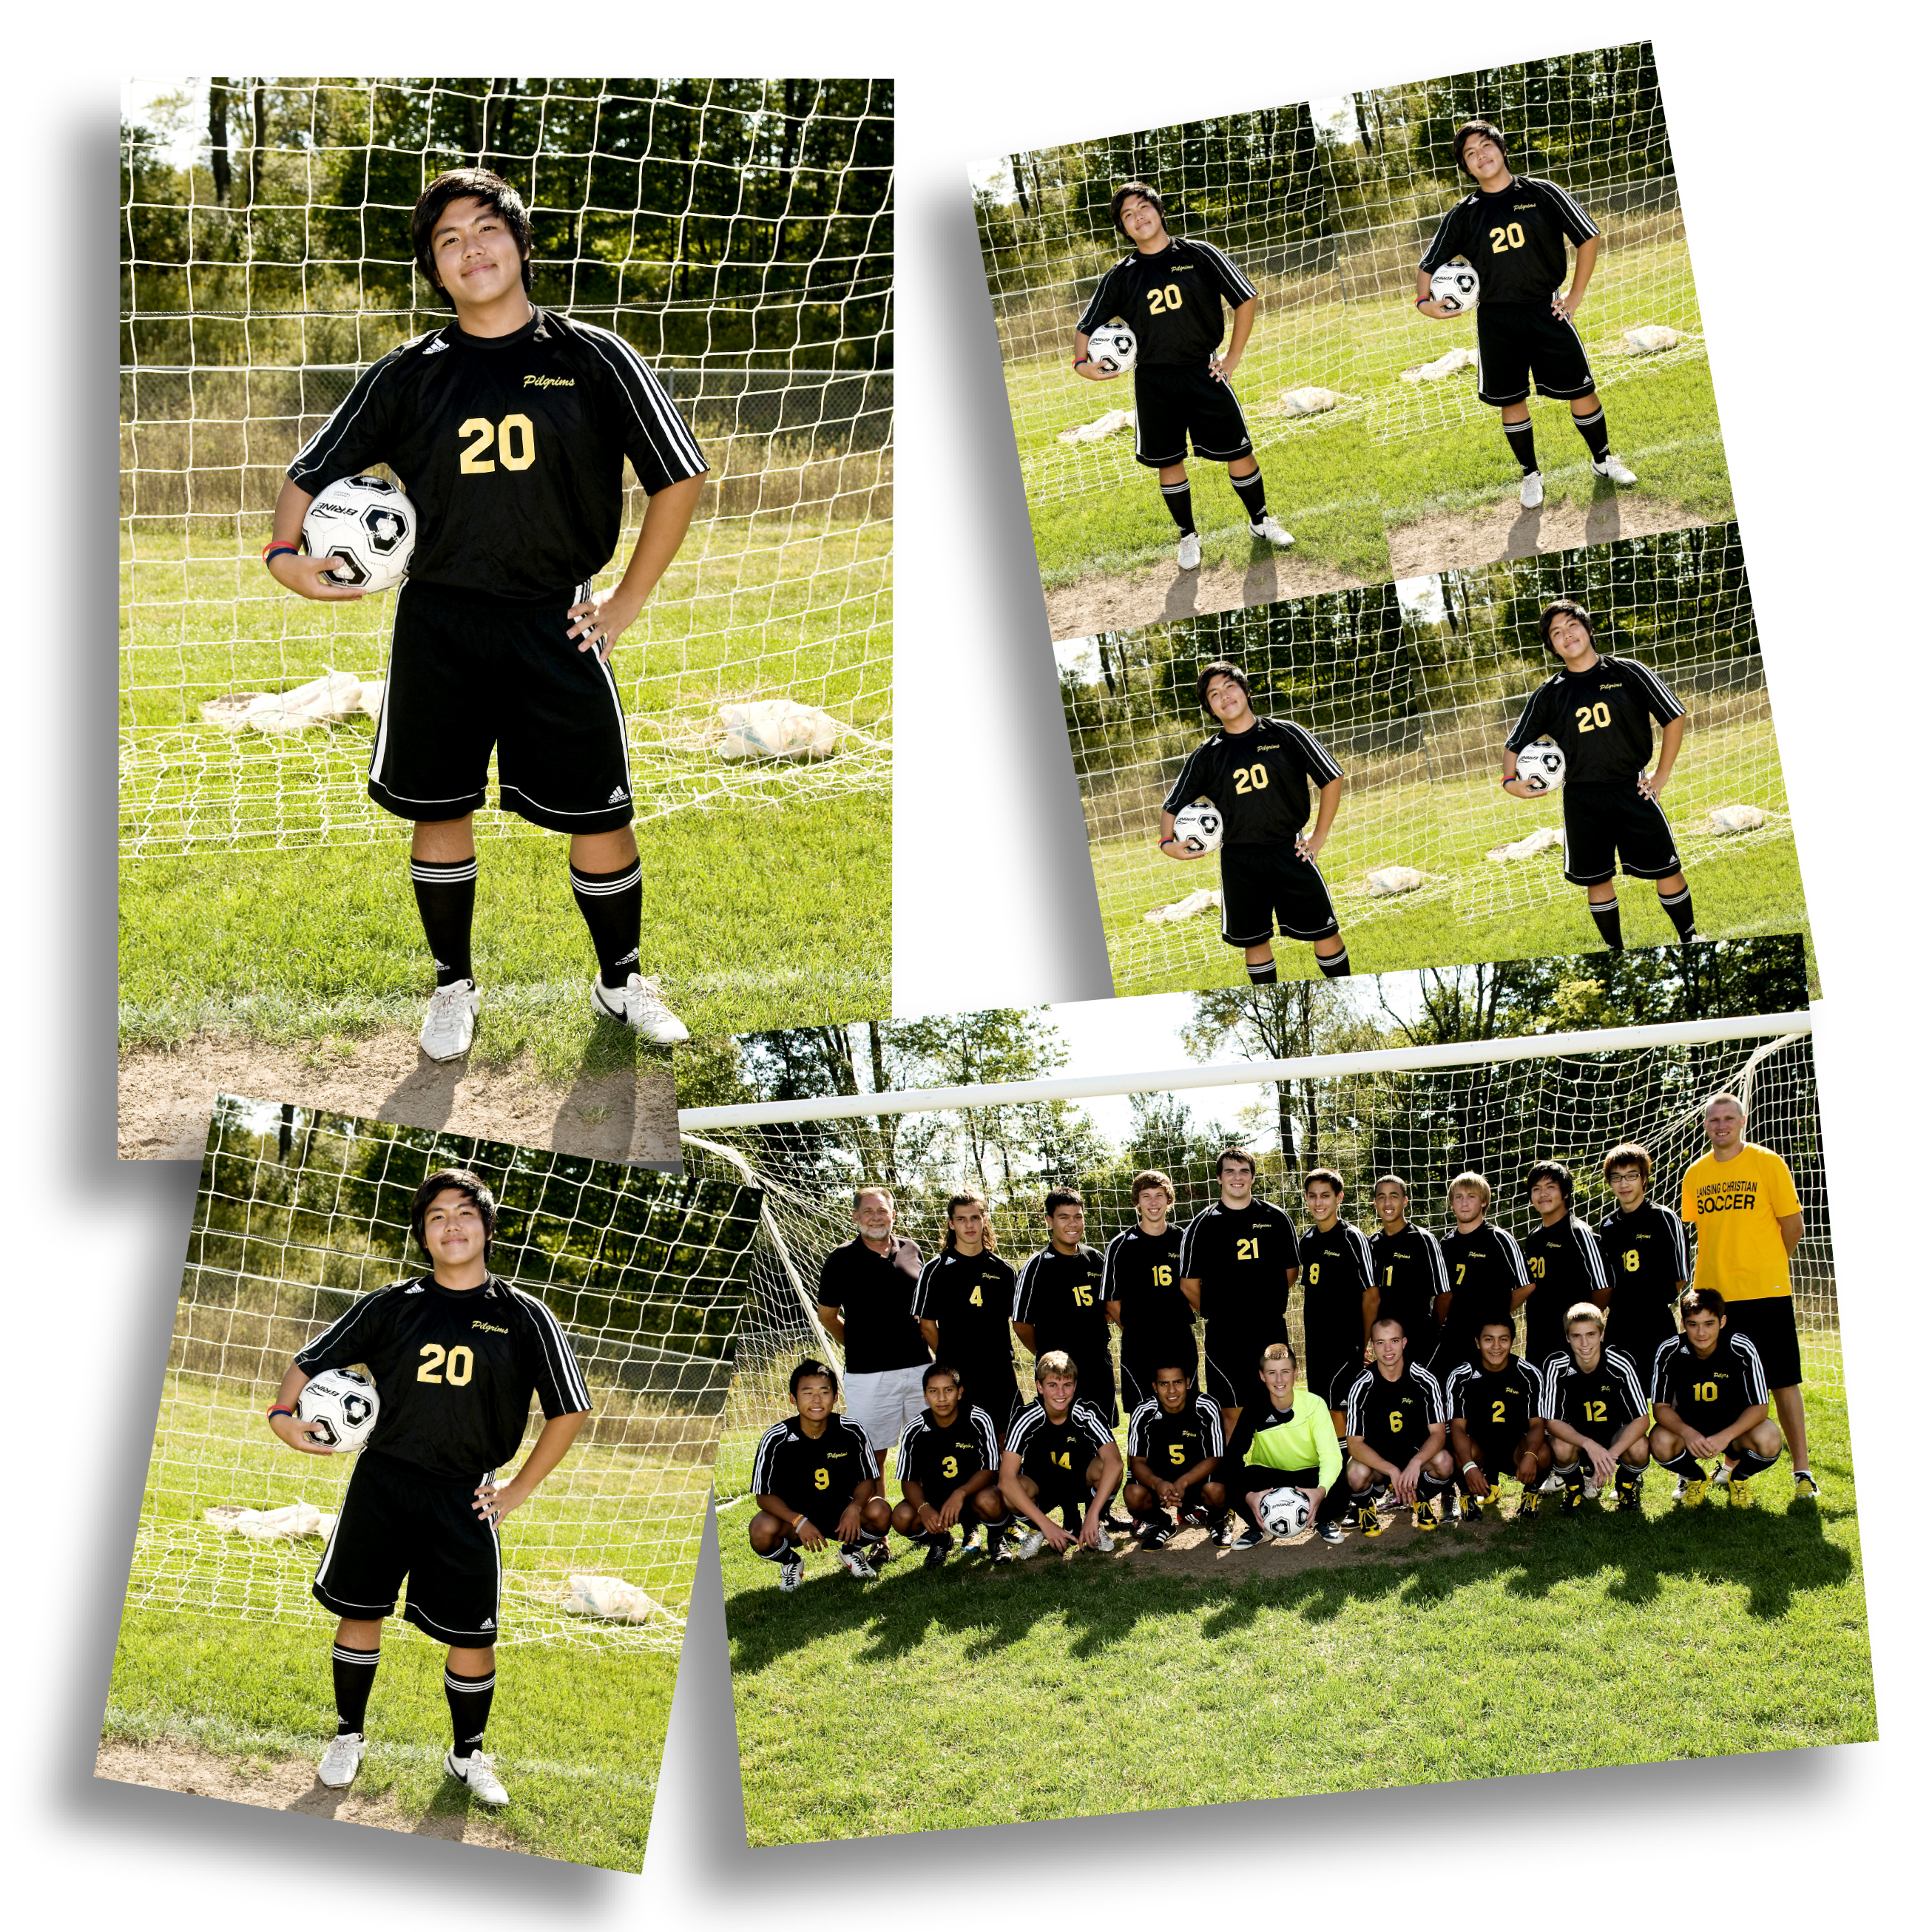 Soccer Team & Individual Photos Printed in Different Sizes of Prints